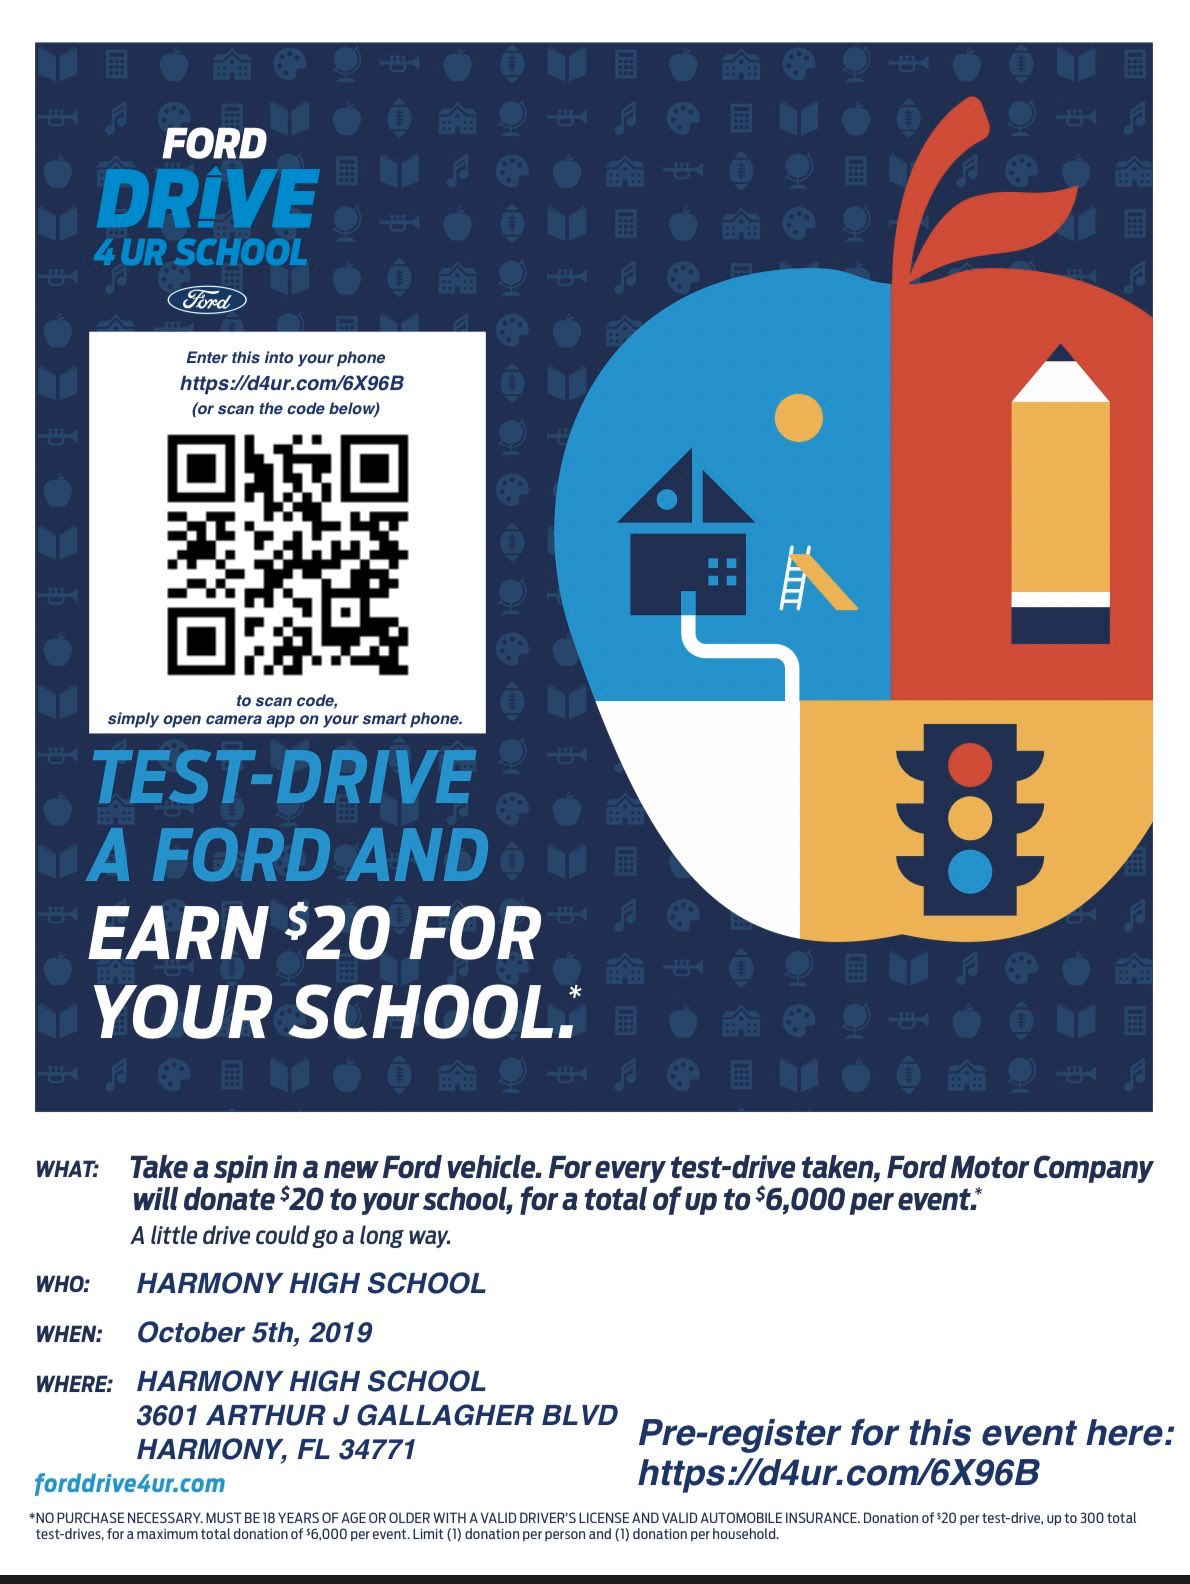 kisselback ford on twitter come out to harmonyhighfl today and test drive a brand new ford to help raise money for harmony high athletic programs https t co uvjr6q5zax twitter